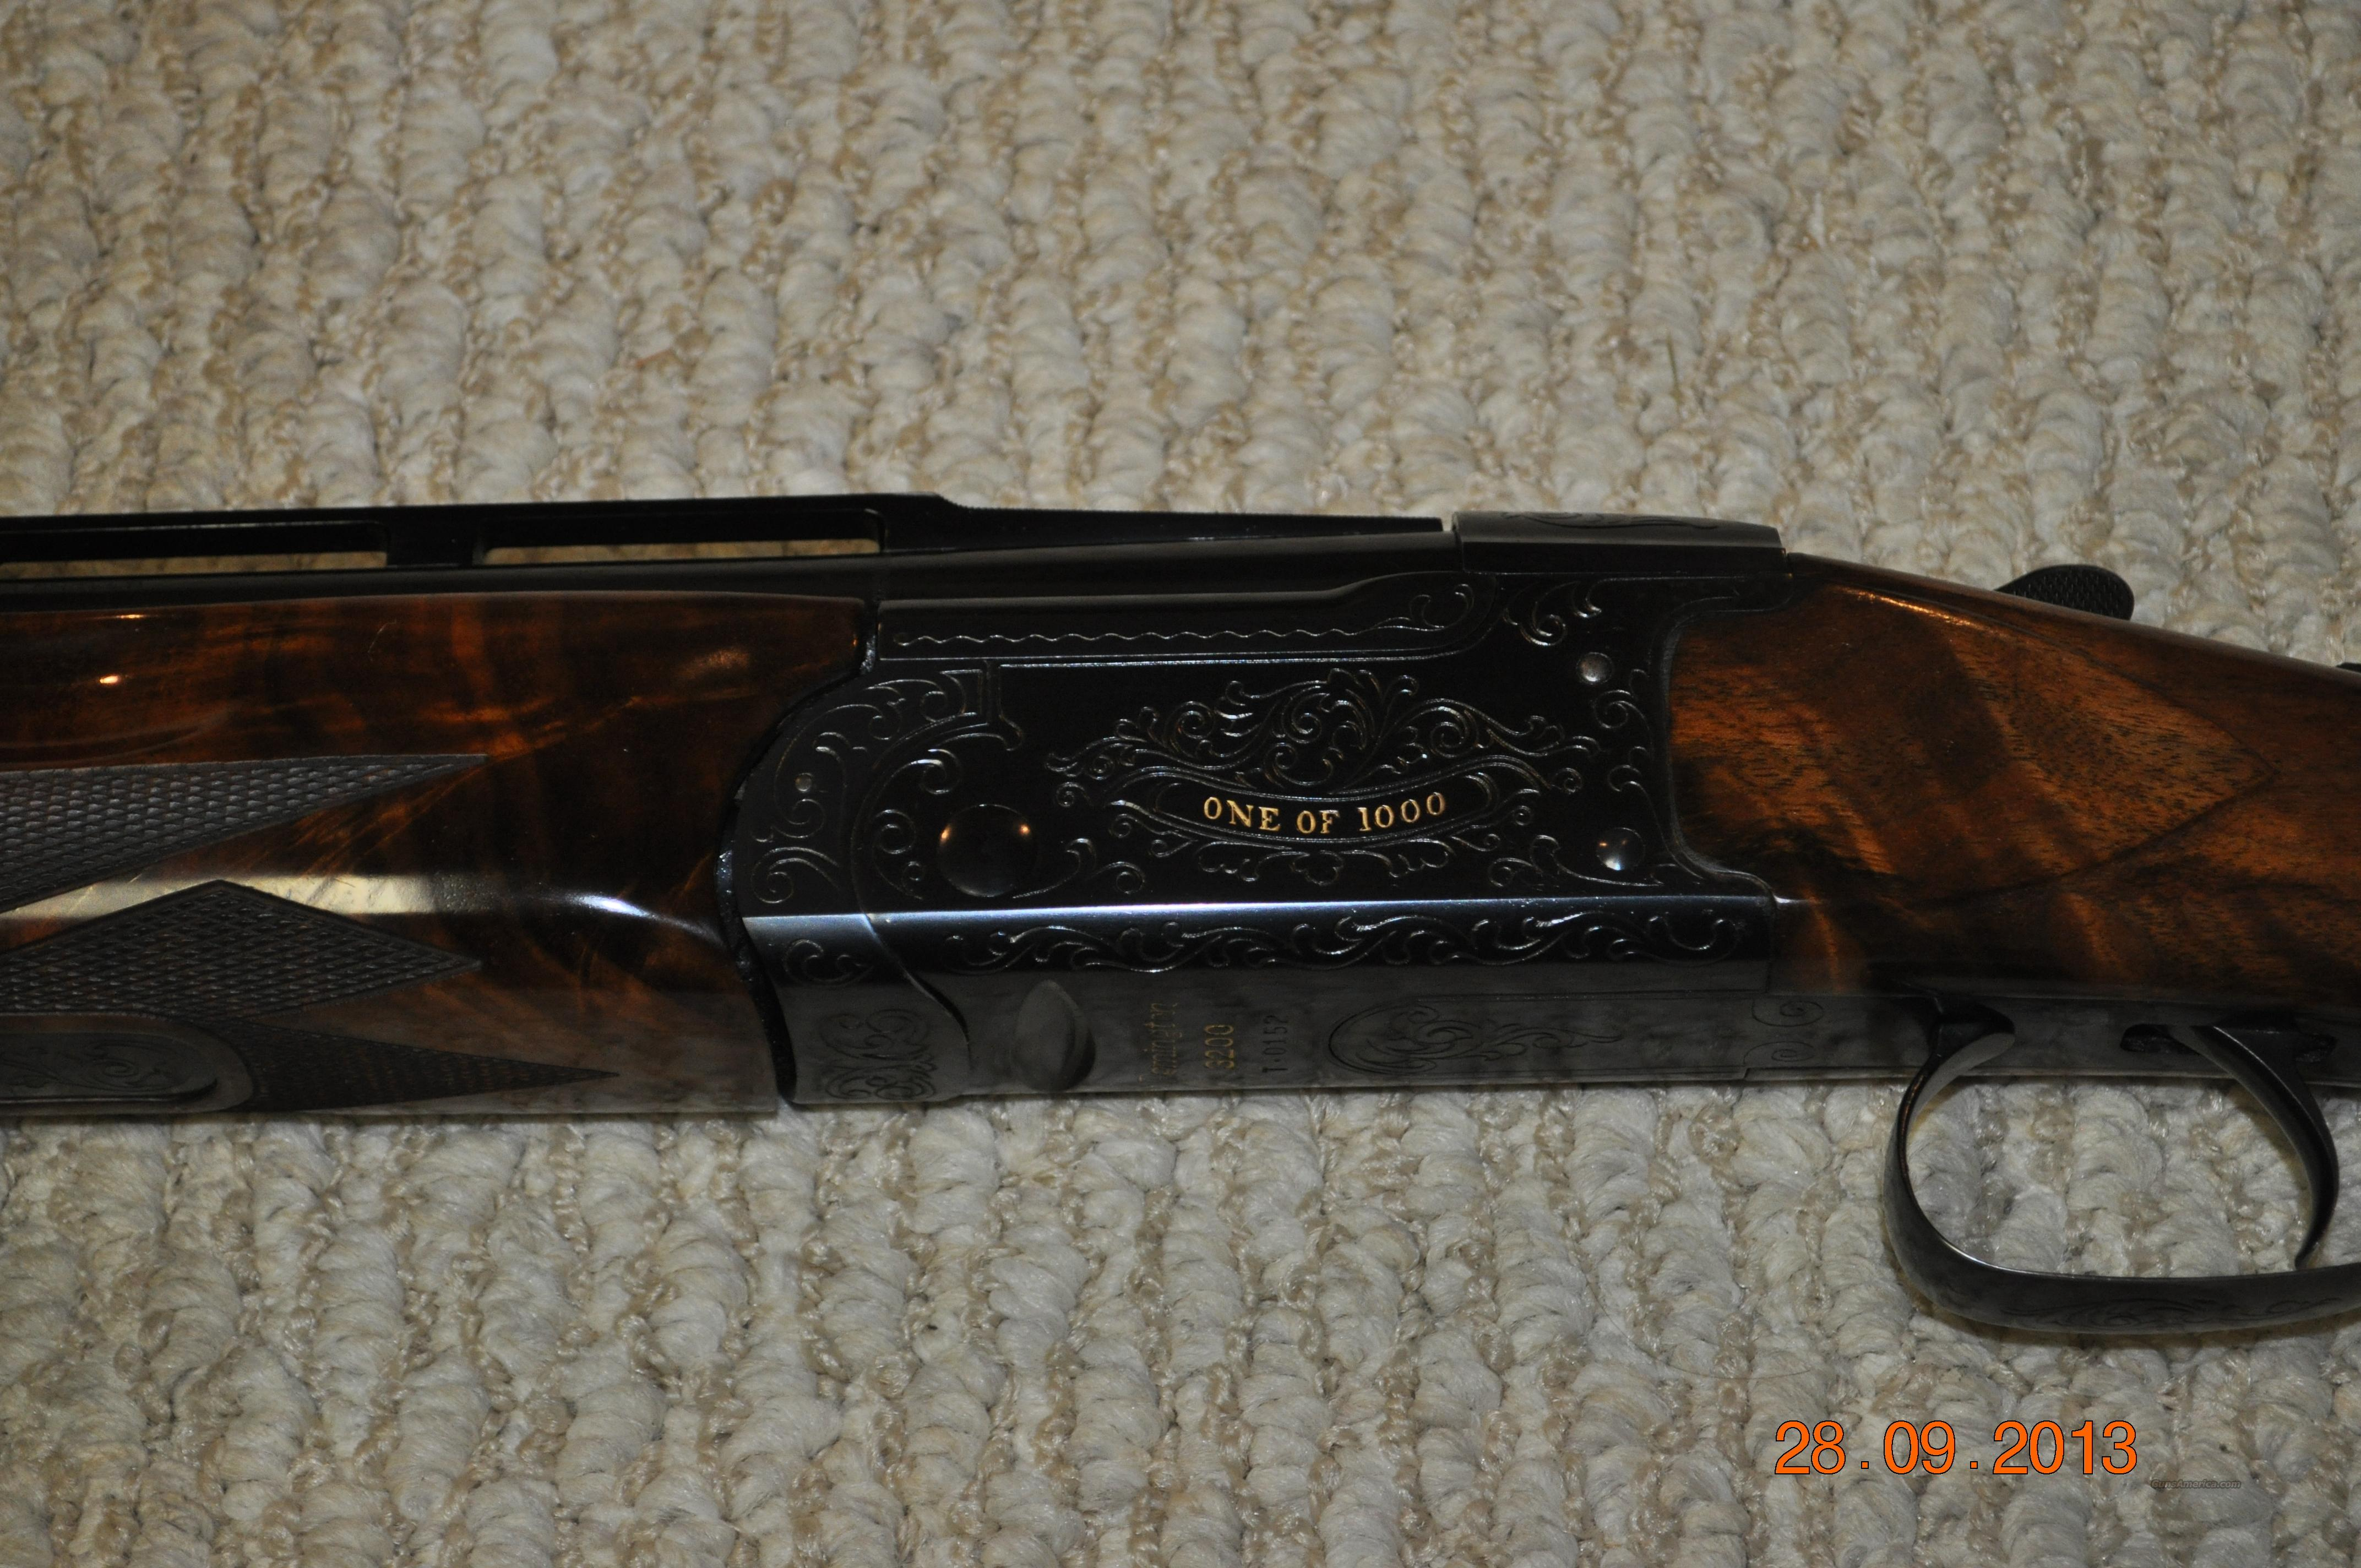 Remington 3200 1 OF 1000  Guns > Shotguns > Remington Shotguns  > O/U